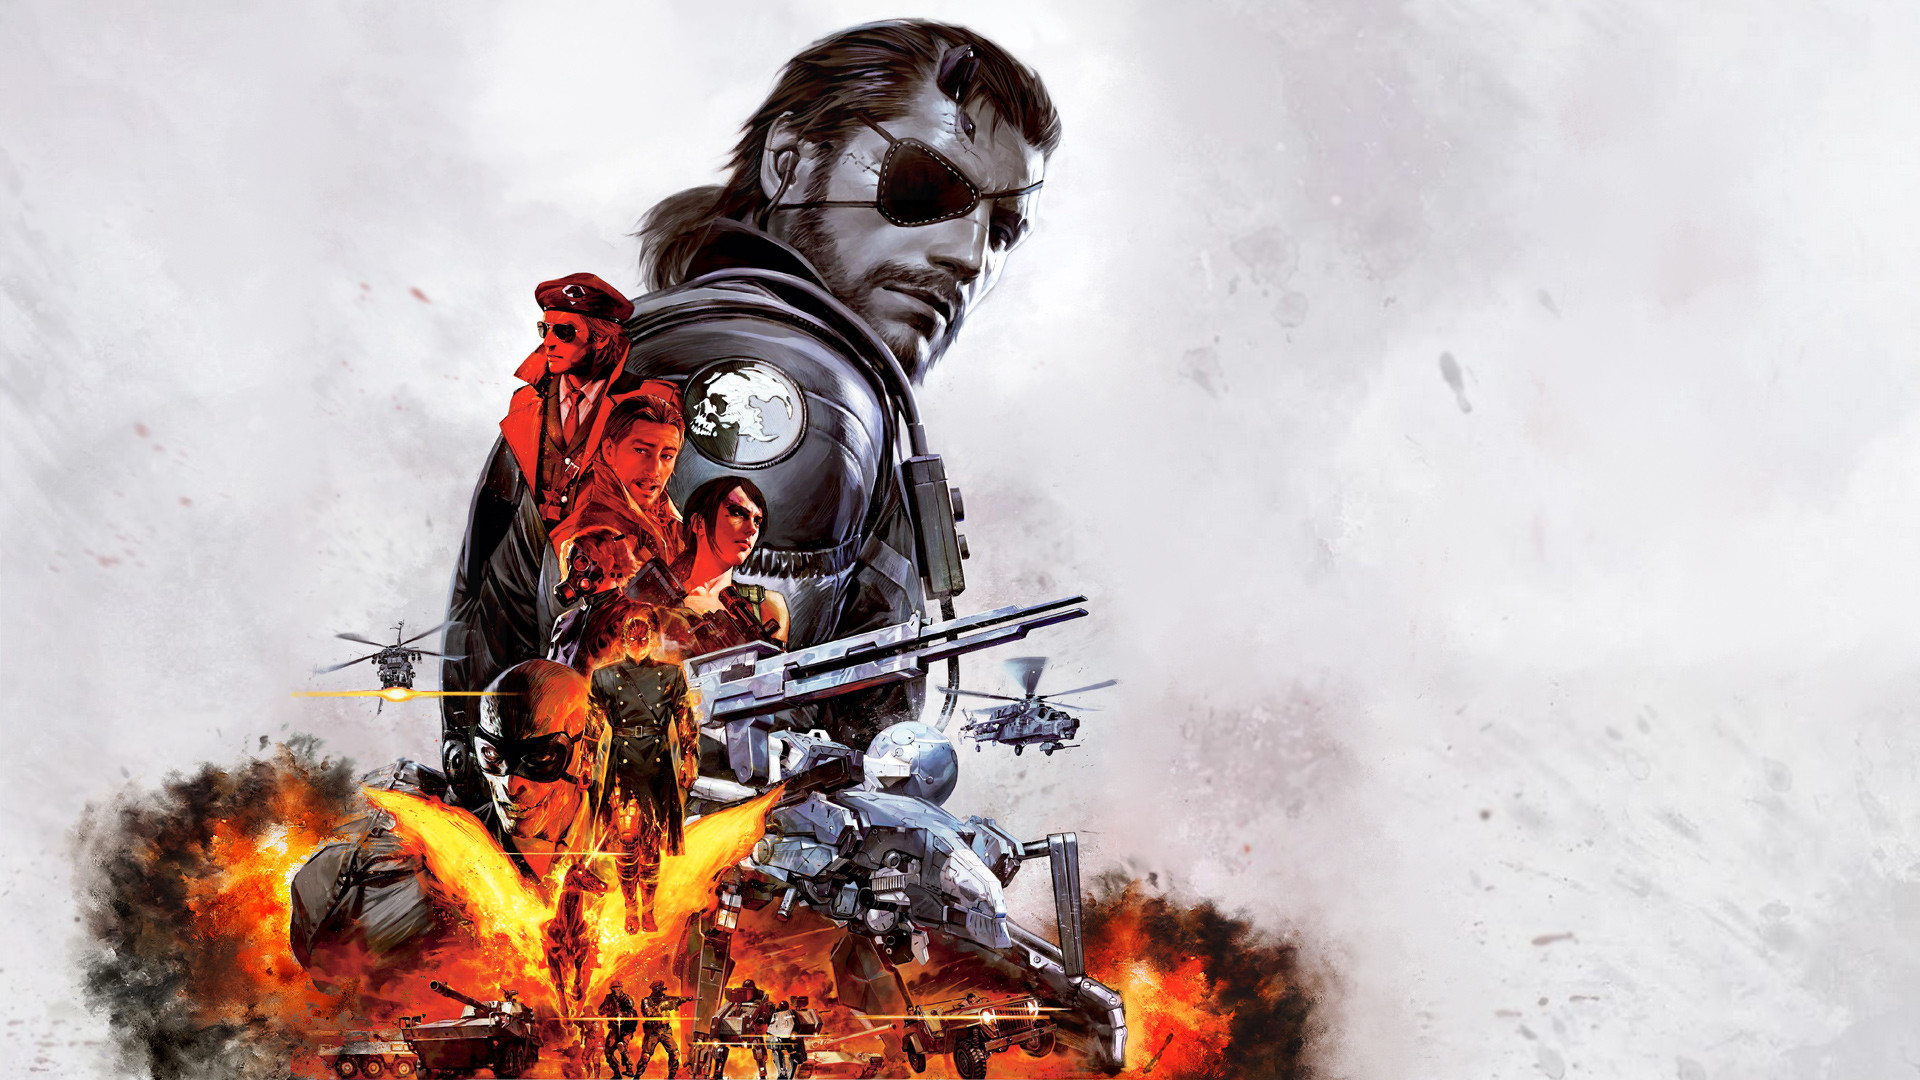 Metal gear solid 5 wallpapers 79 images - Mgs 5 wallpaper ...